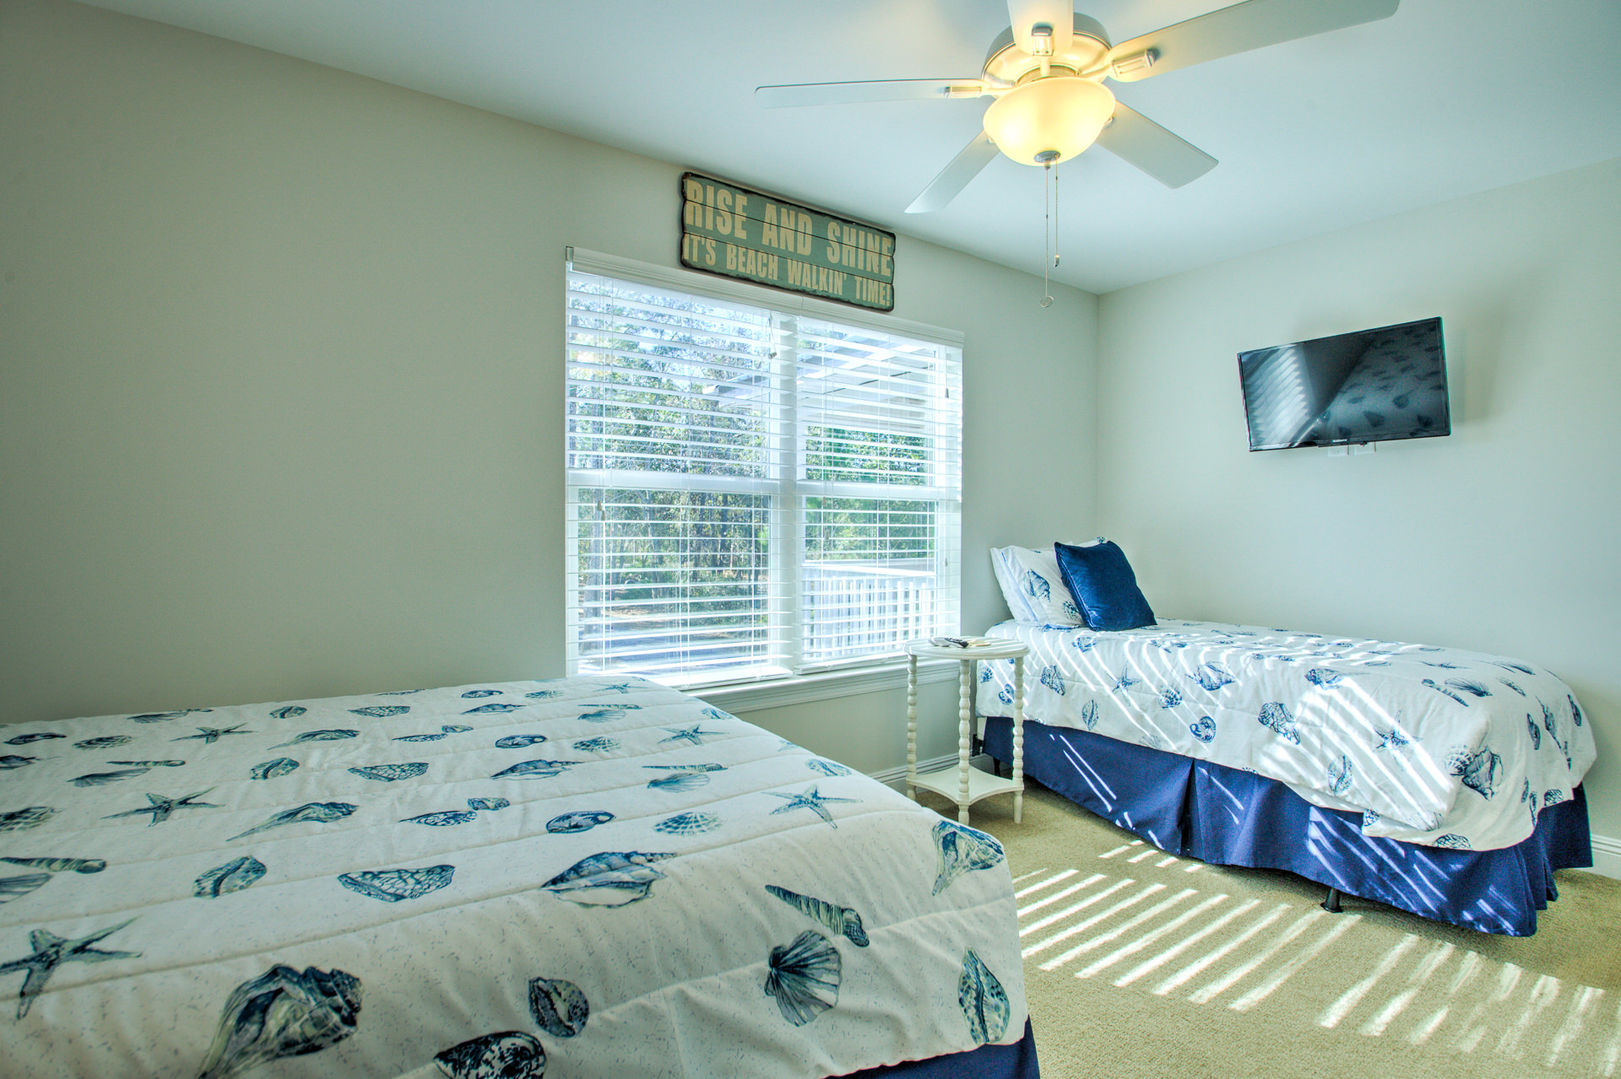 Bedroom Includes Two Beds and a Large Window.